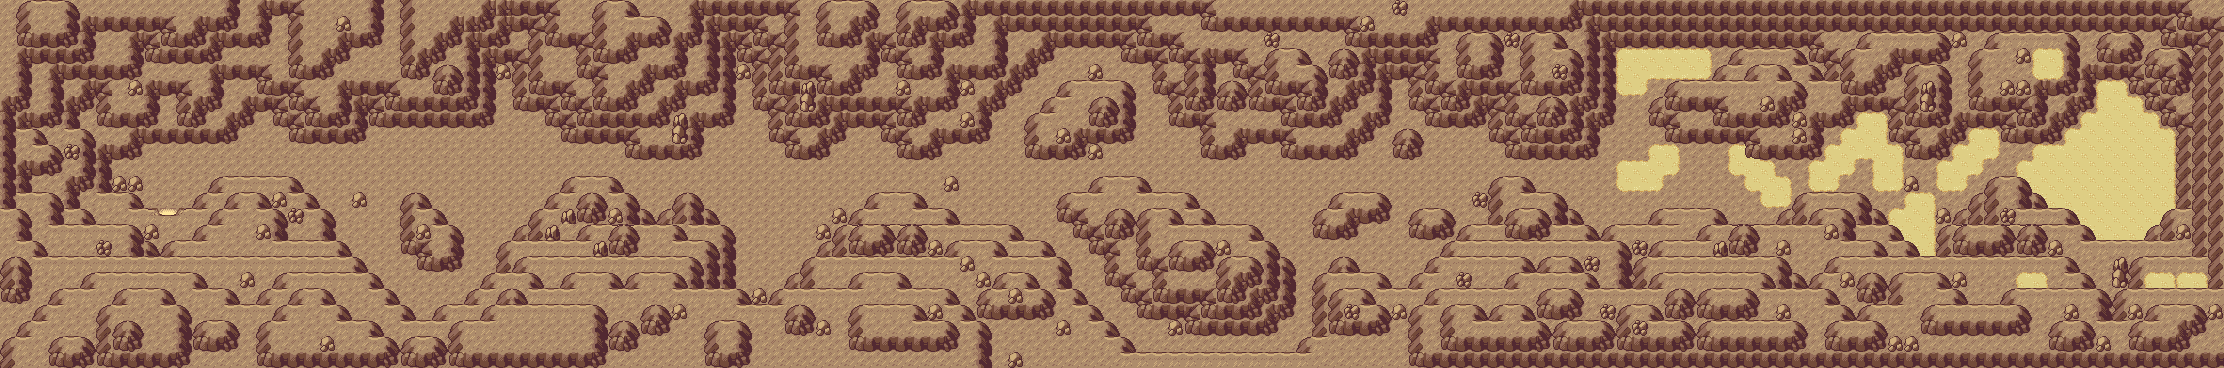 Worksheet. Pokarth  Hoenn  Desert Underpass